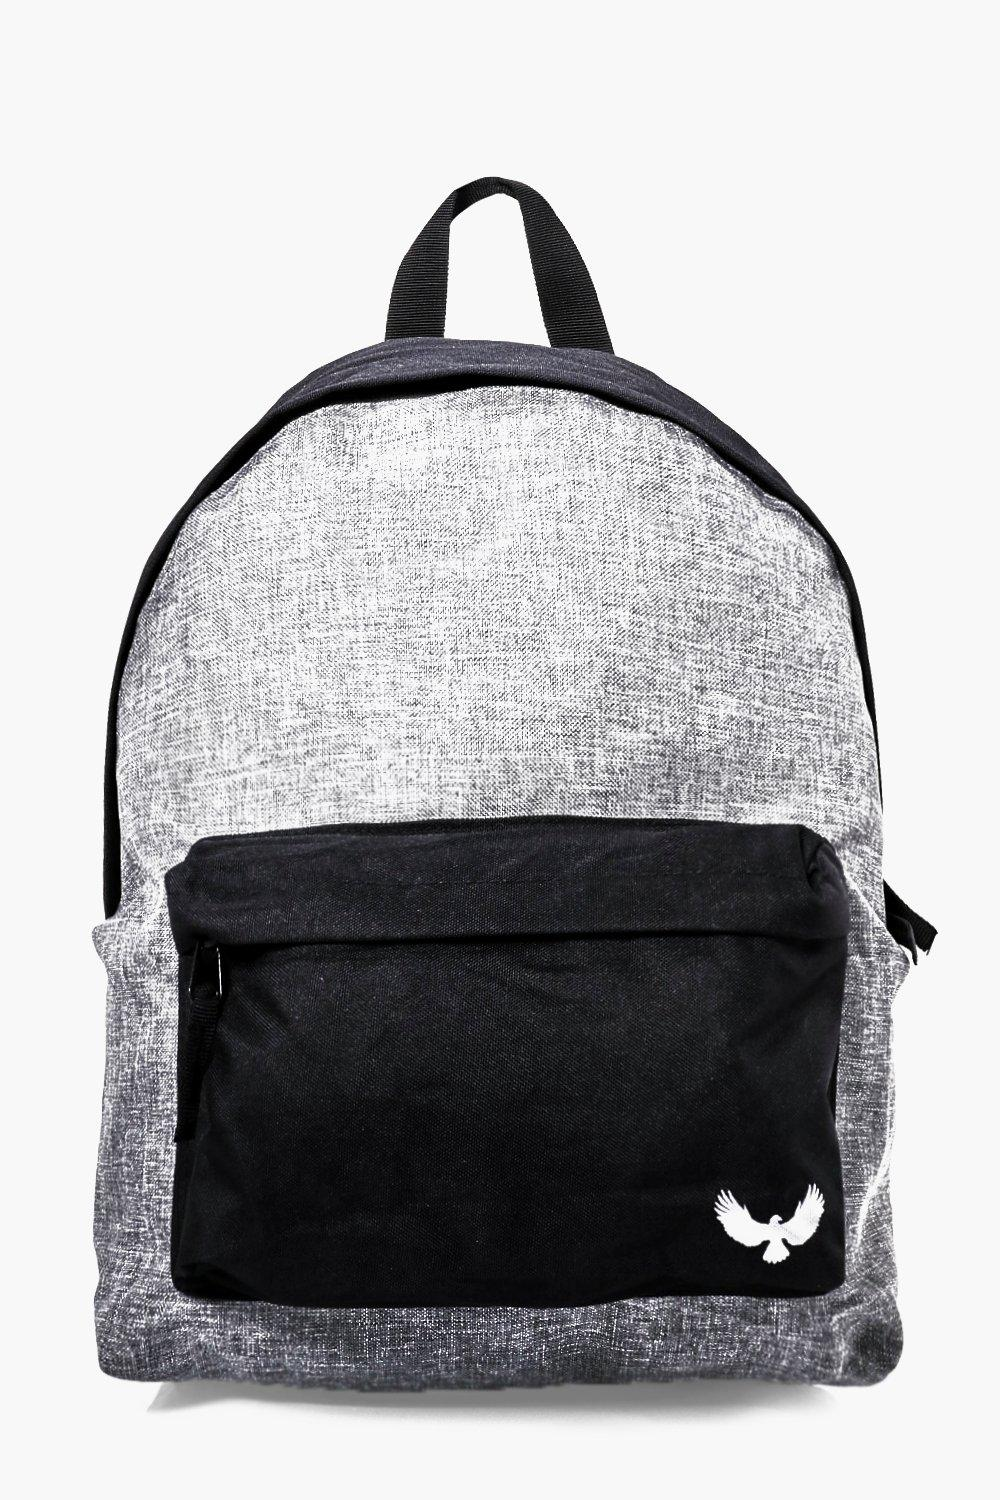 Contrast Panel Canvas Backpack - grey - Grey Contr